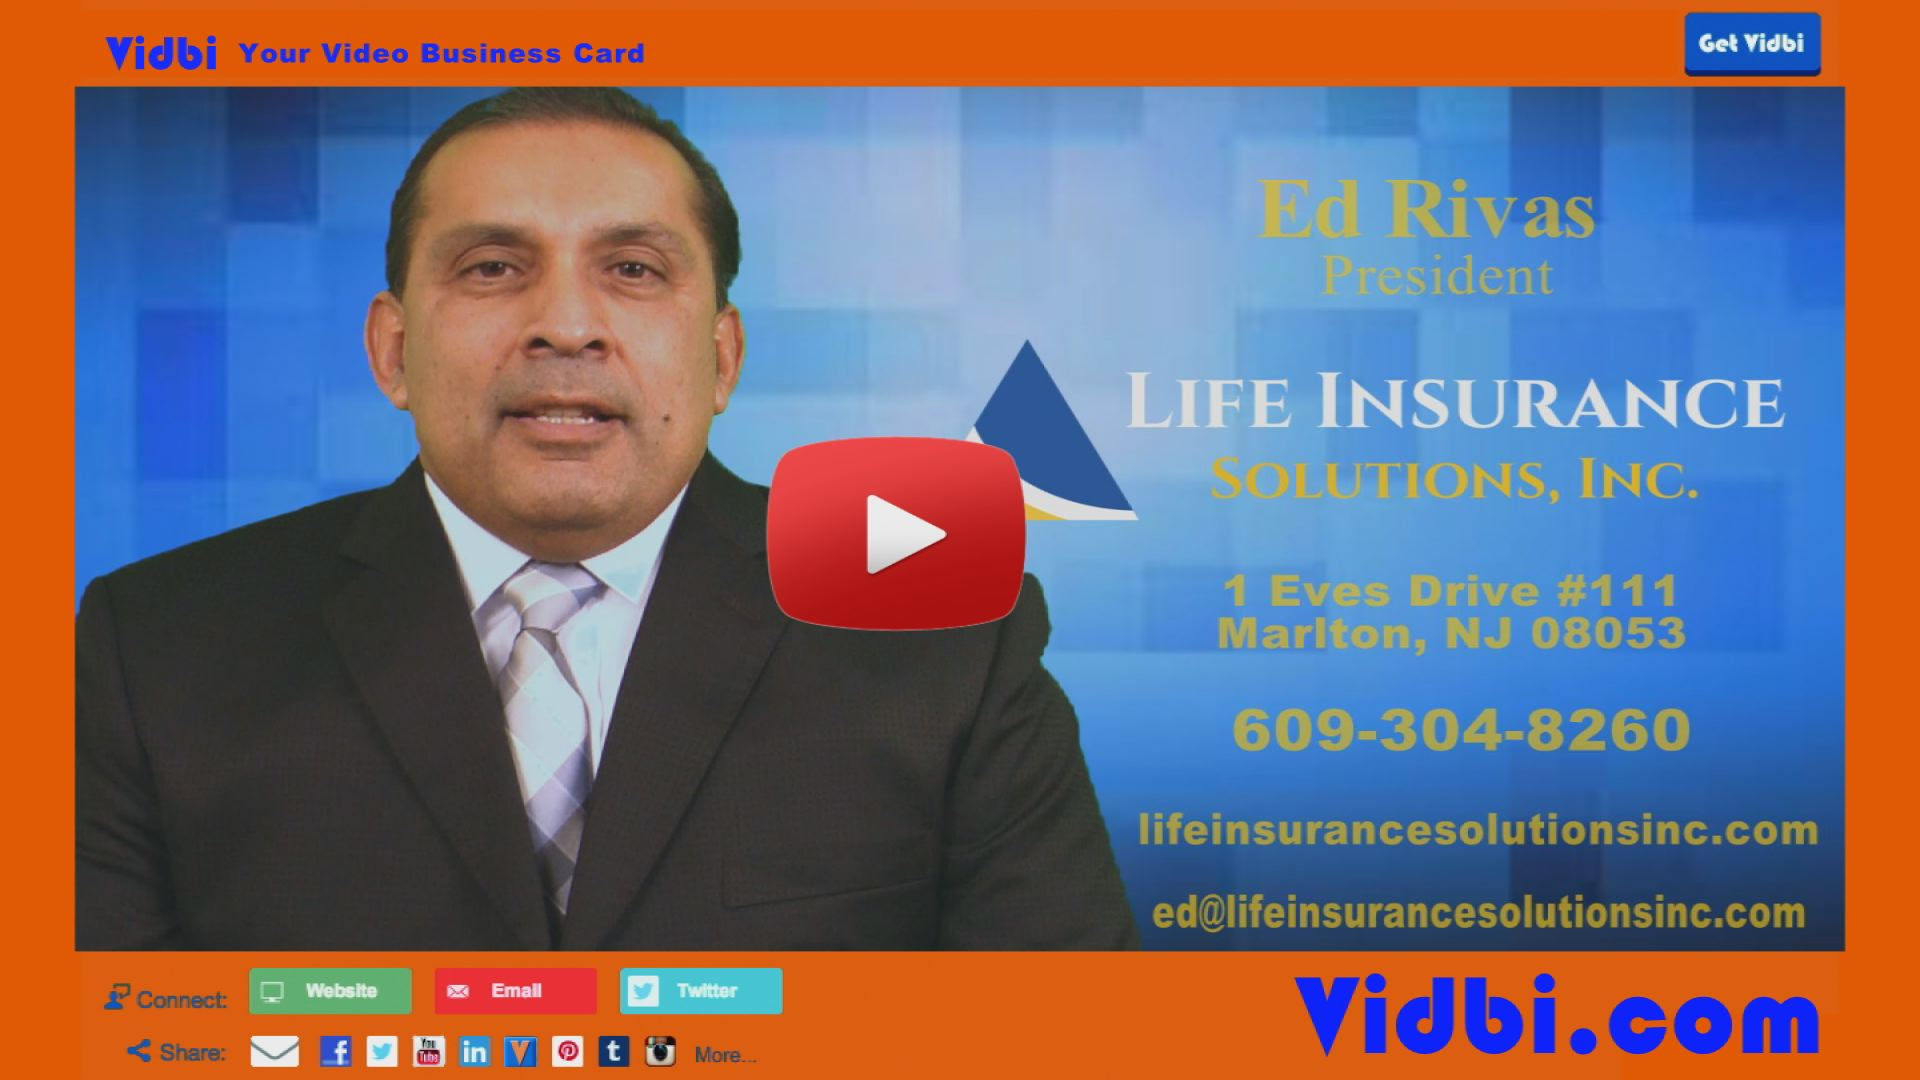 Ed Rivas - Life Insurance Solutions Inc Vidbi